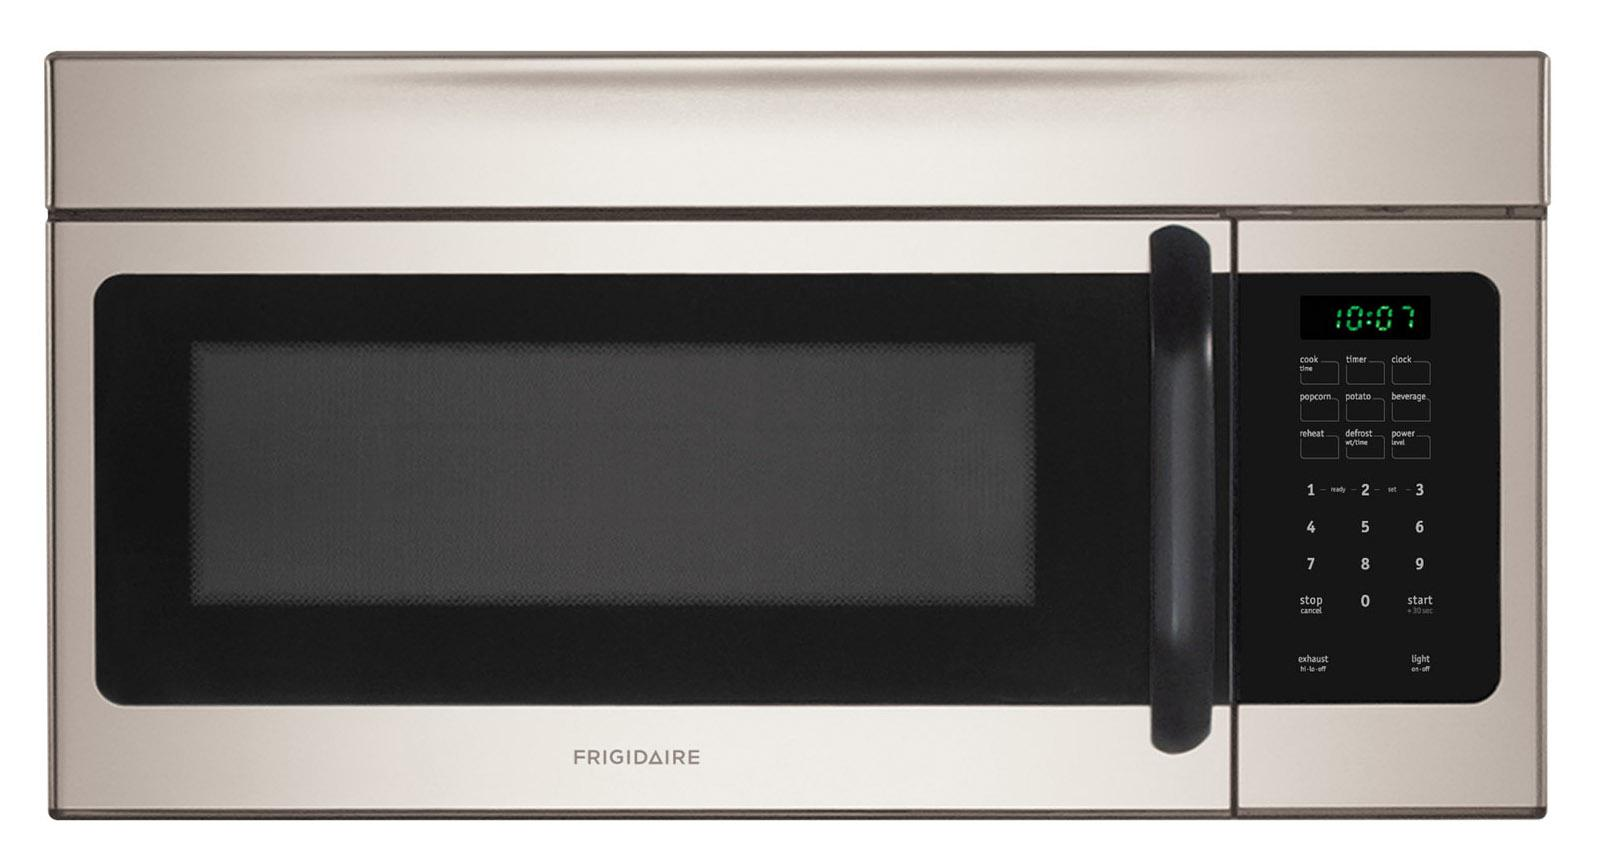 Mount Countertop Microwave Over Stove : Frigidaire Microwaves 1.6 Cu. Ft. Over-The-Range Microwave - Item ...